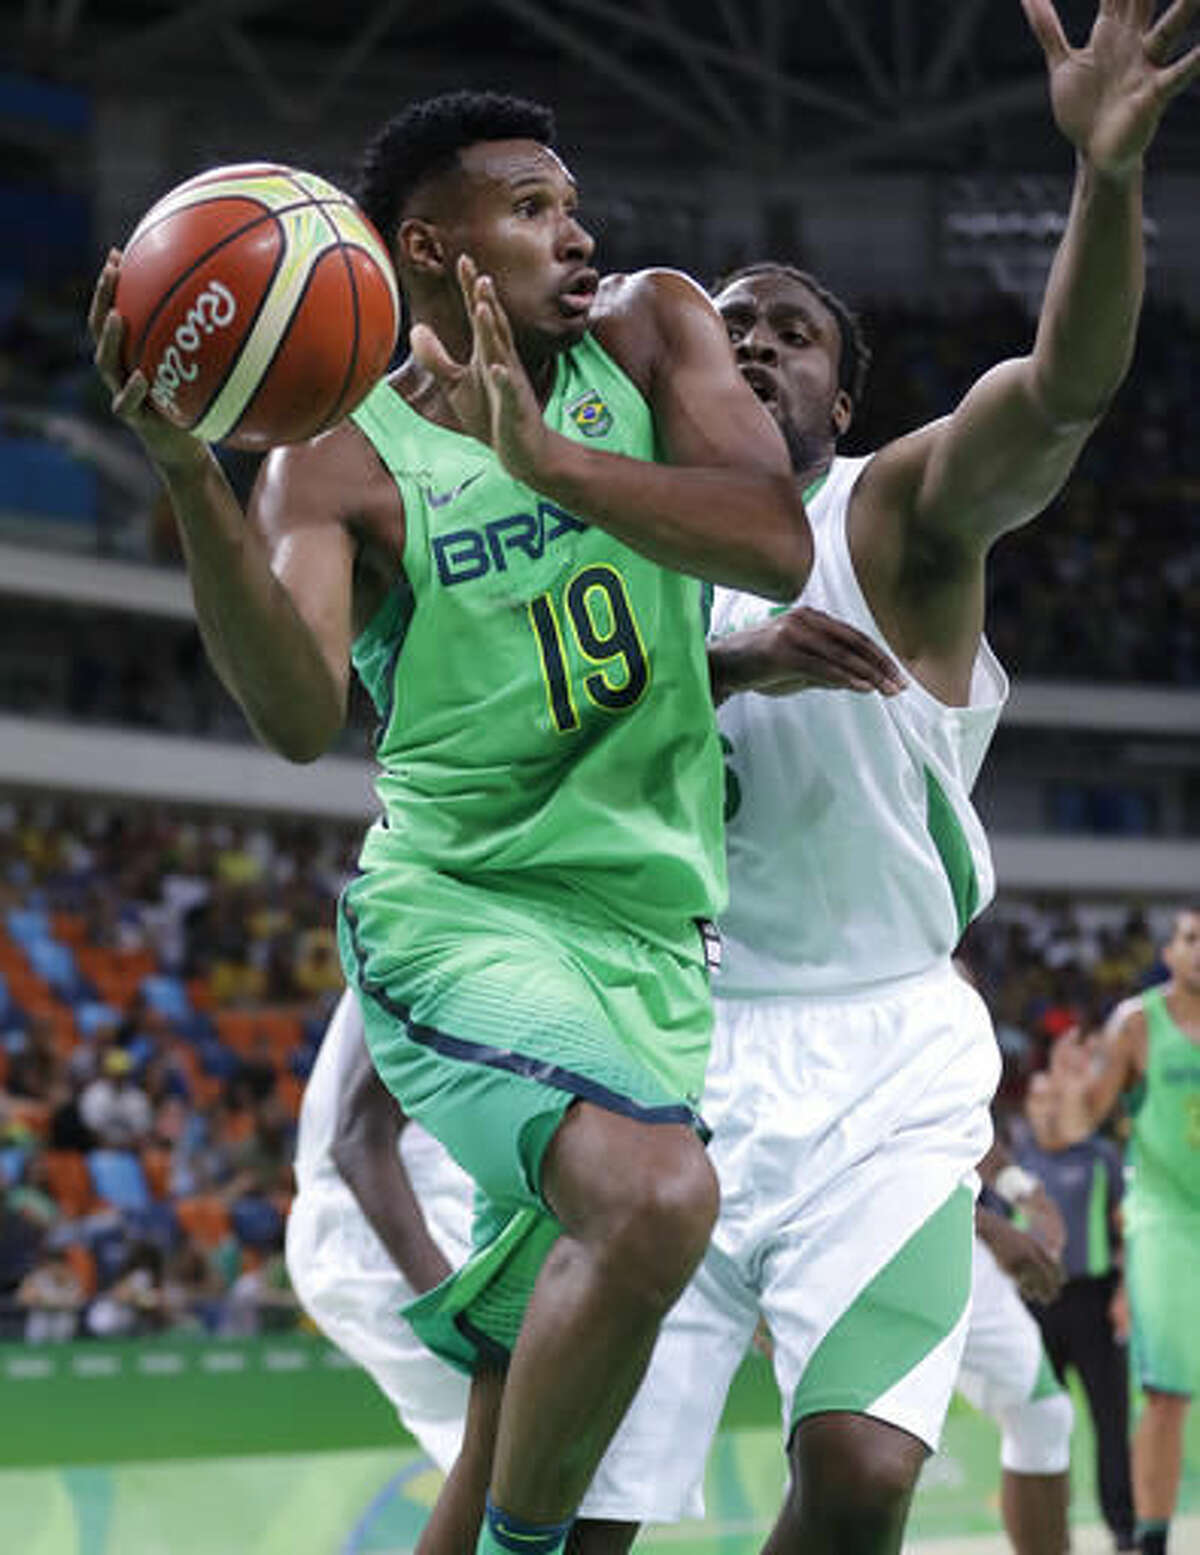 Leandro Barbosa: Playing in Brazil's professional leagueBarbosa, who played for Brazil in the 2016 Rio Olympics, signed with the Phoenix Suns after leaving the Warriors in 2016. The Suns ended up waiving the shooting guard after just one season, and Barbosa joined Brazil's professional basketball league, Novo Basquete Brasil in November 2017. He has played for both Franca and Minas.